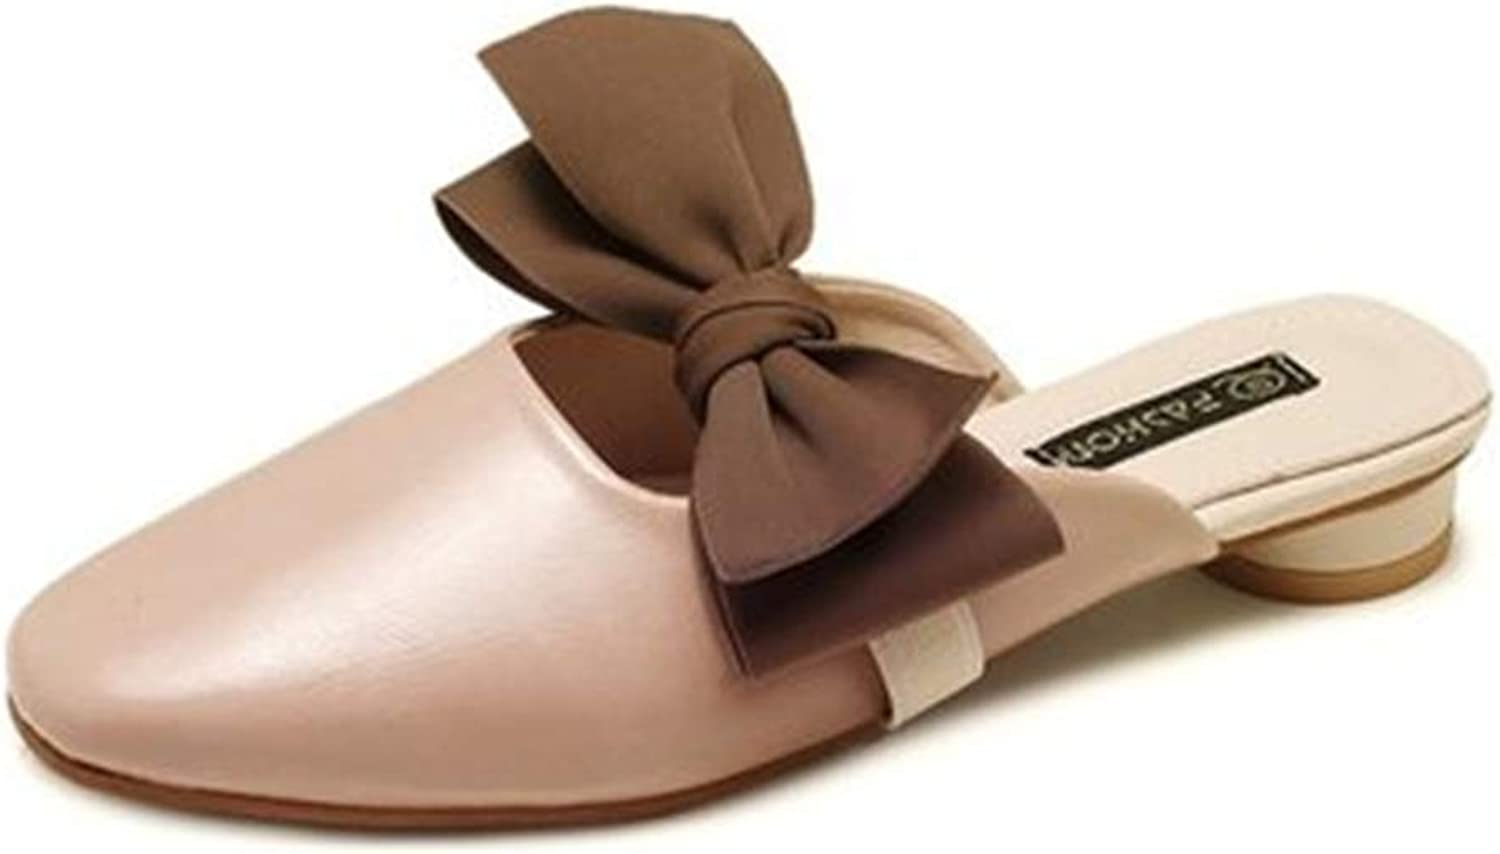 Gusha Women's Muller Flat Casual shoes Summer Sandals Walking shoes Comfortable